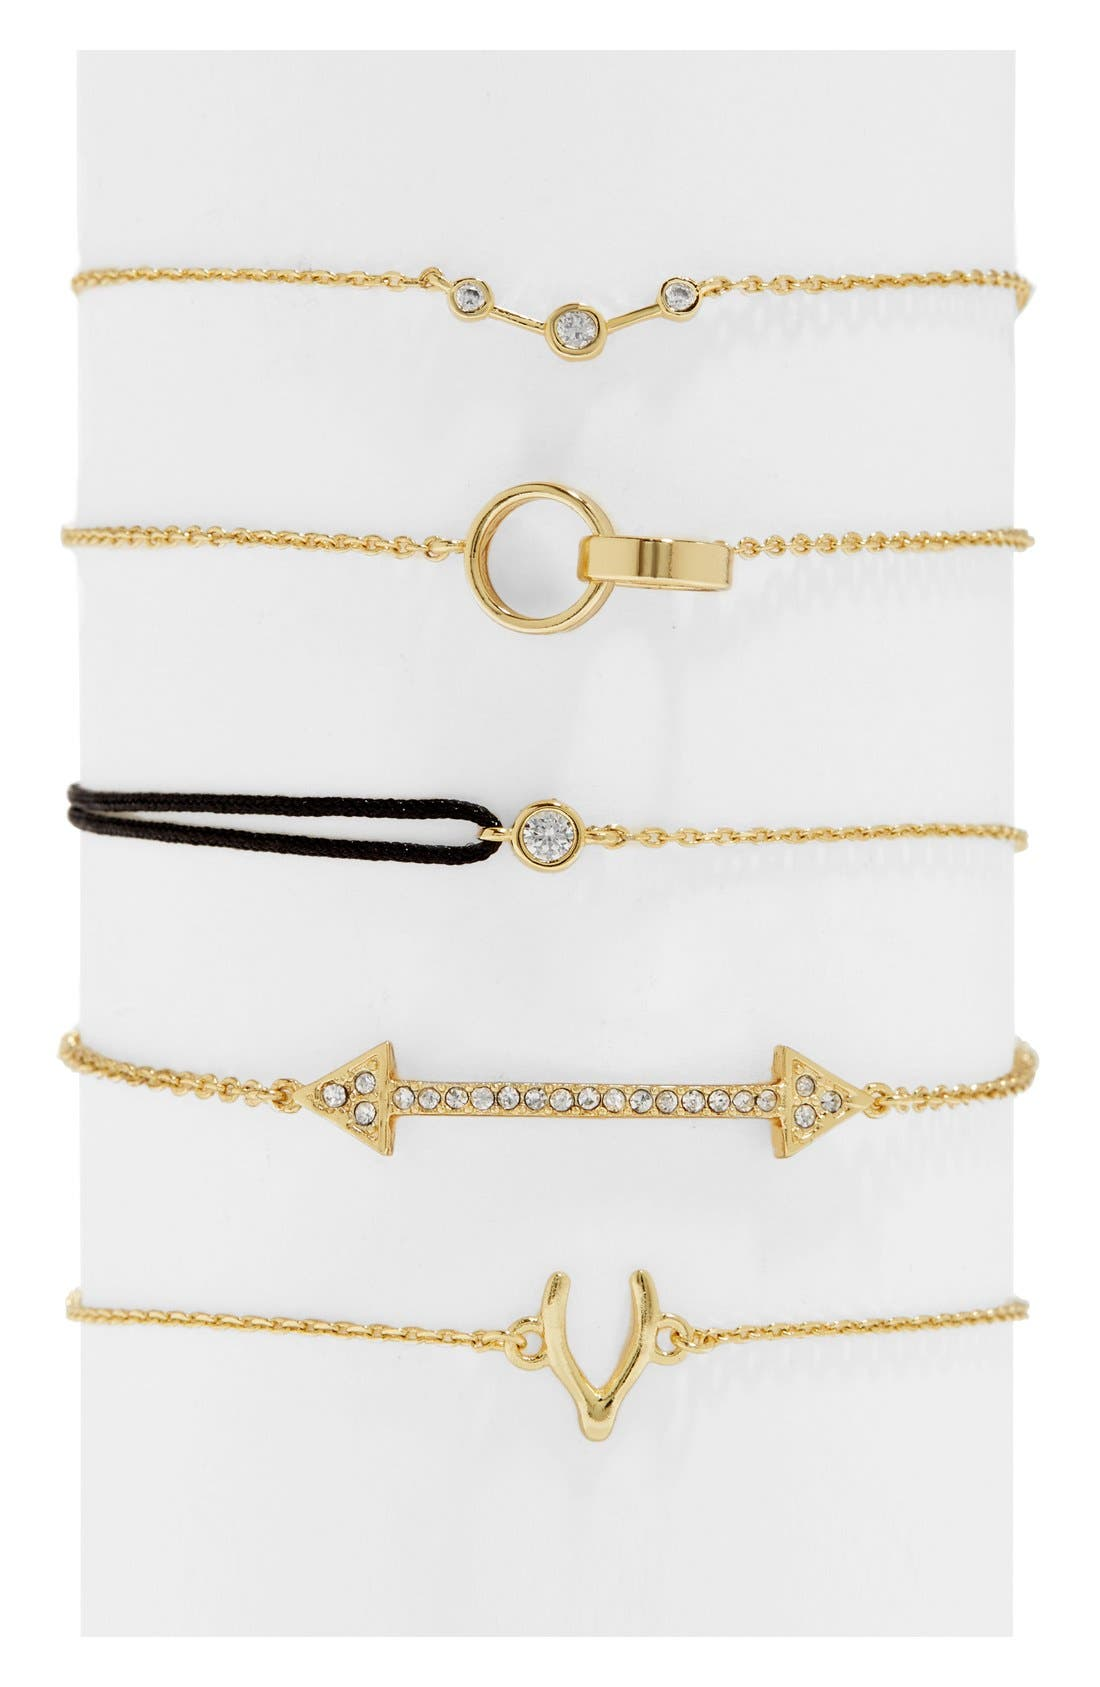 Shay Mitchell - Guest Bartender Collection Sojourn Set of 5 Charm Bracelets, Main, color, 710